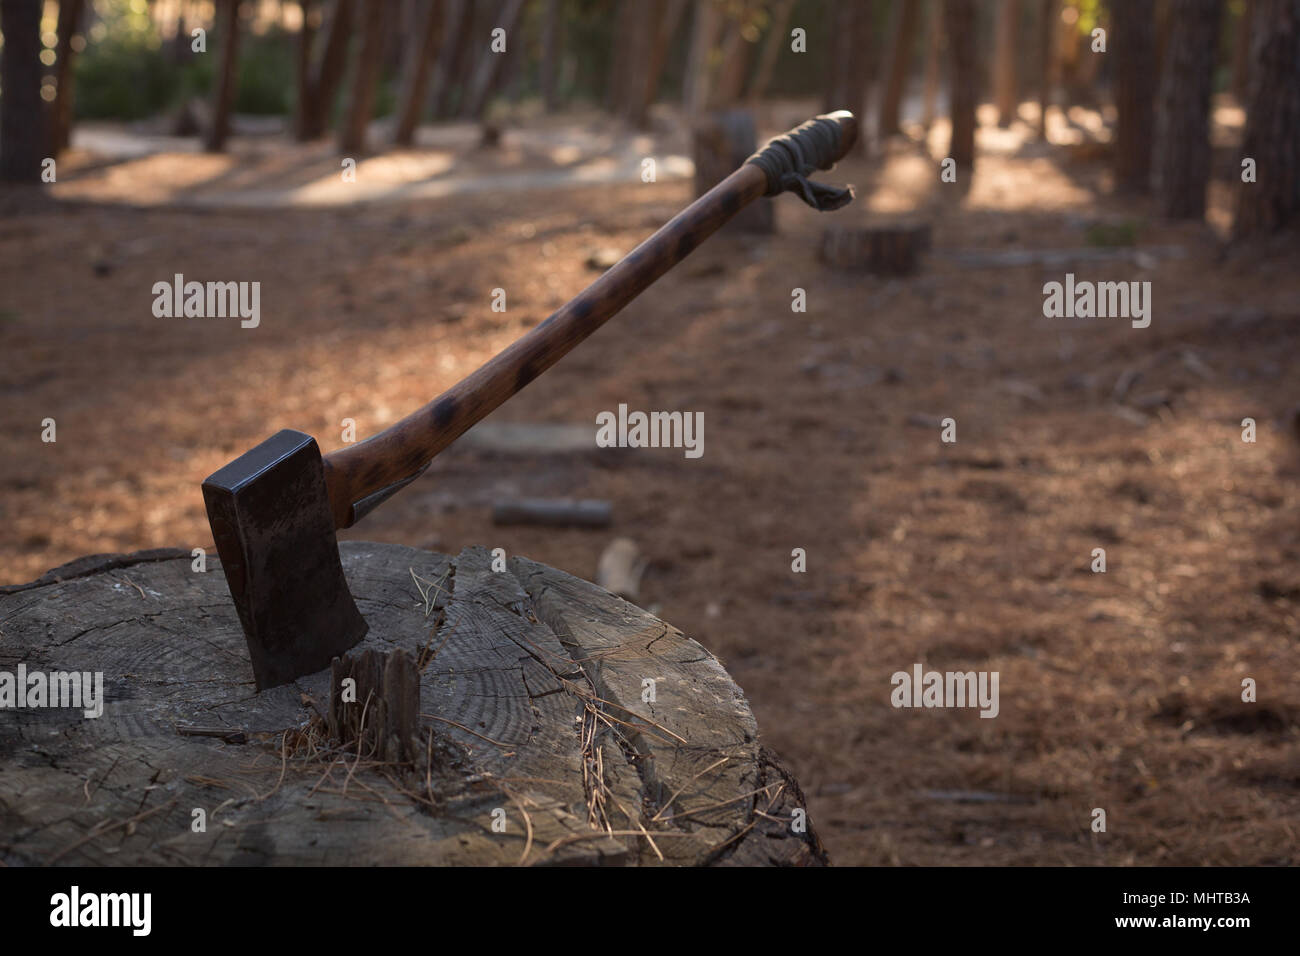 An axe being thrust into a stump - Stock Image